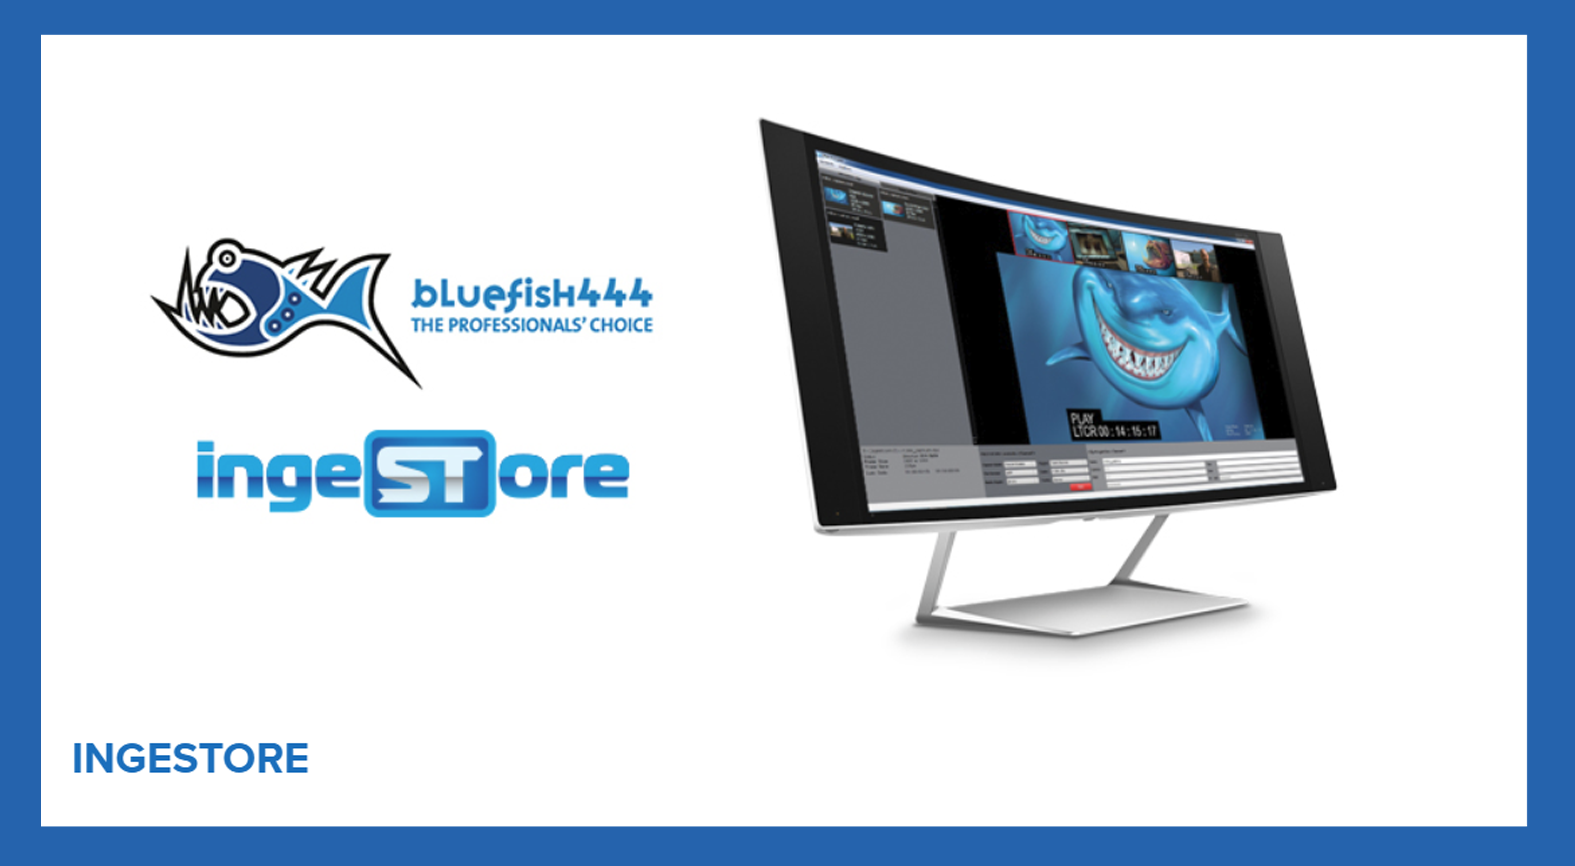 Bluefish444 and ingeSTore